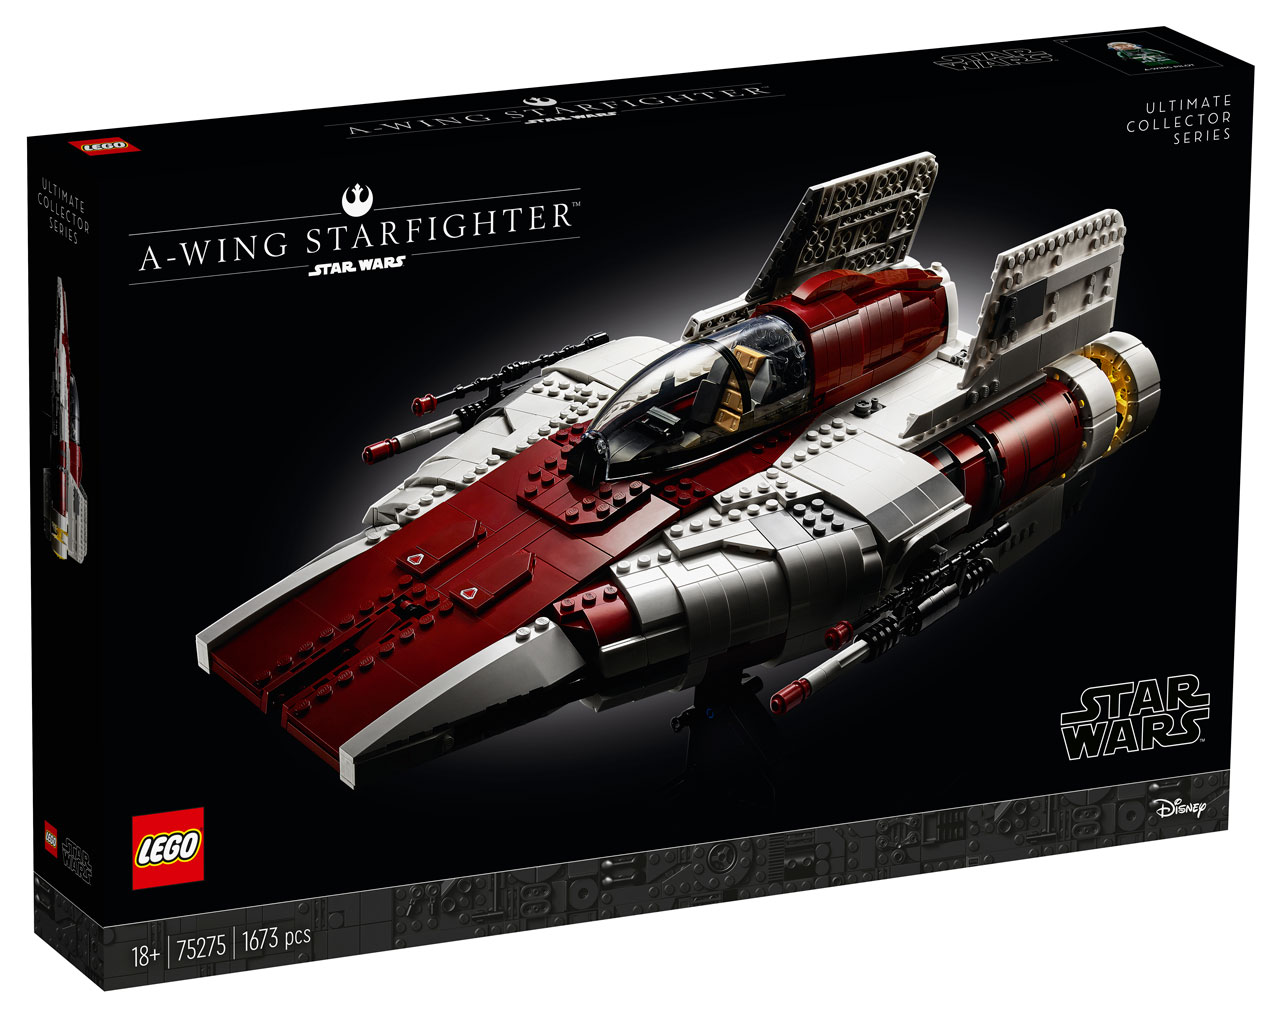 kép:https://starwarsblog.starwars.com/wp-content/uploads/2020/04/LEGO-star-wars-a-wing-starfighter-box.jpg